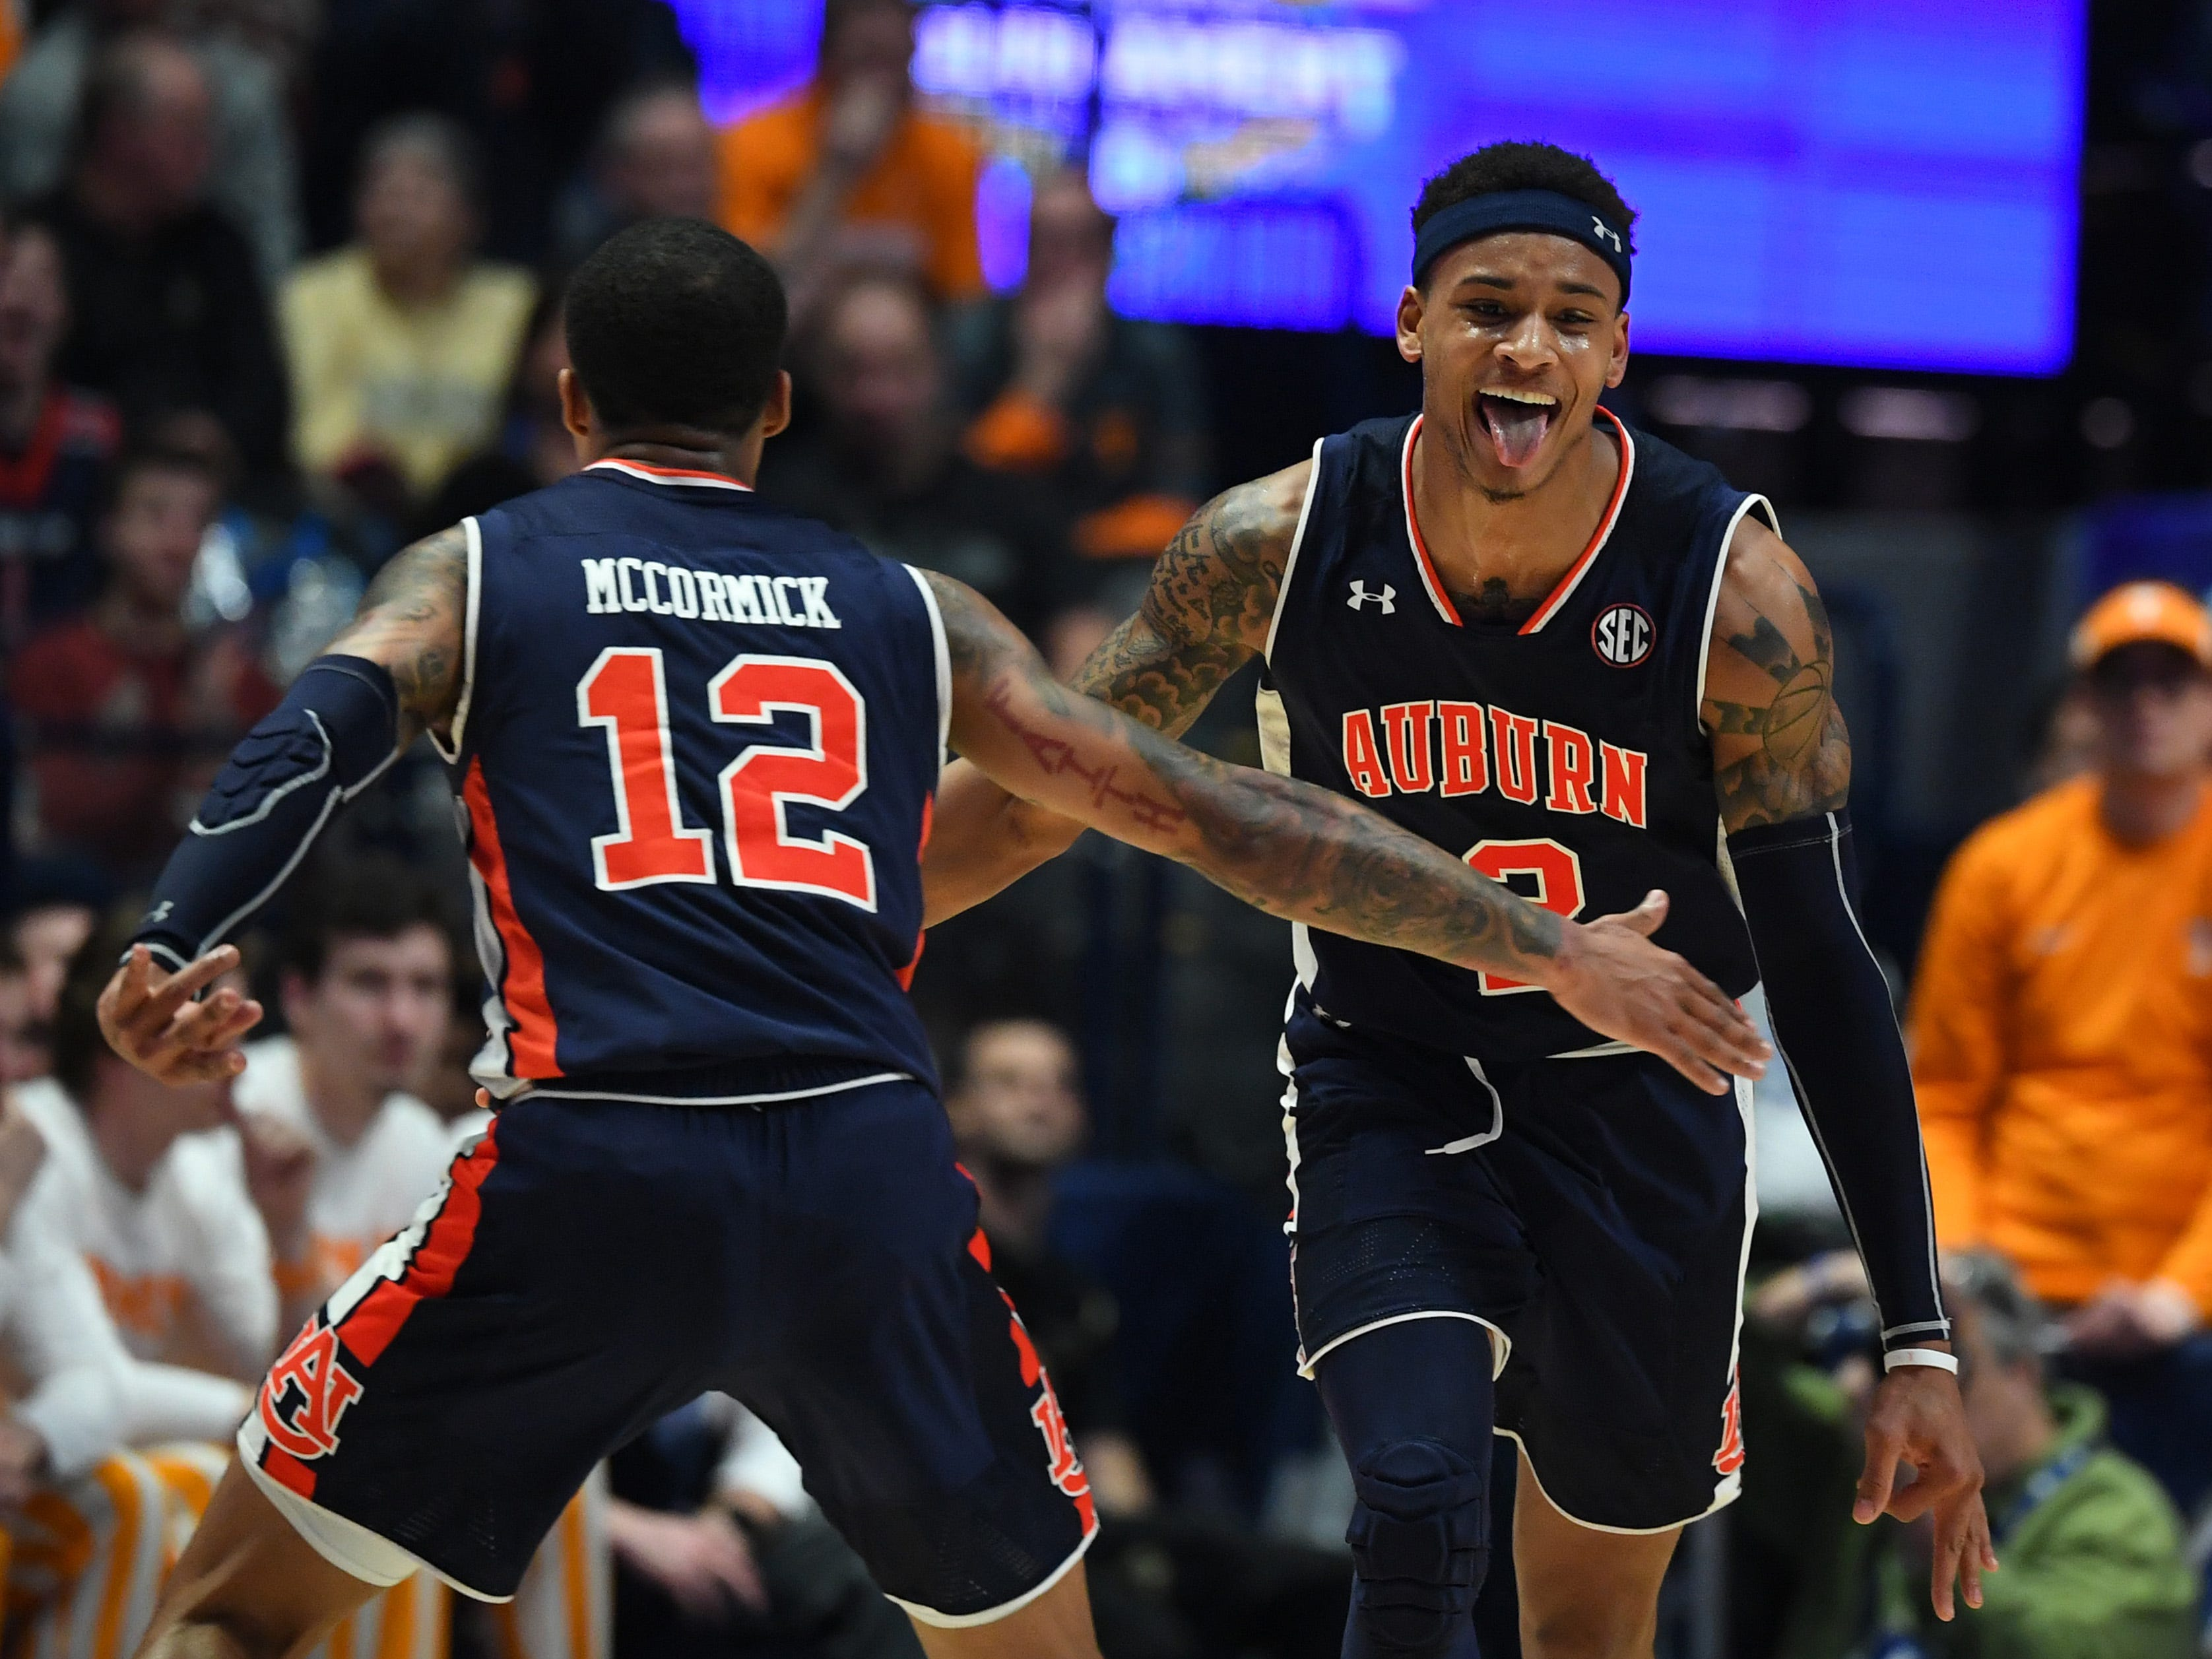 Bryce Brown and J'Von McCormick celebrate after a basket.